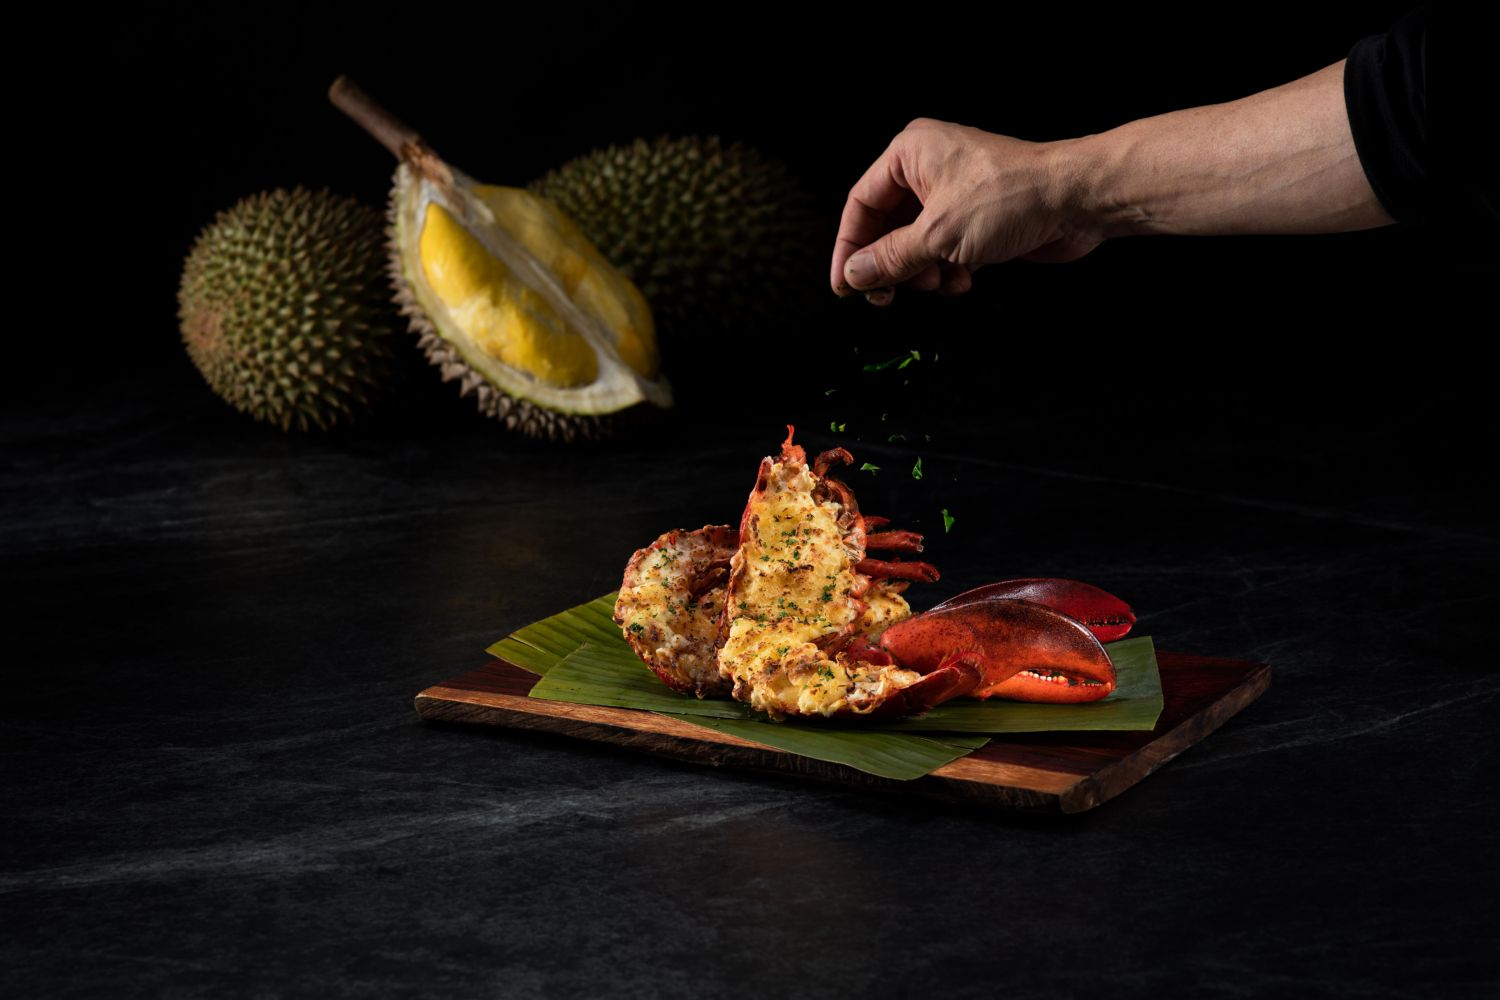 7th Malaysian Food Festival at Galaxy Macau Baked Lobster with Durian and Cheese